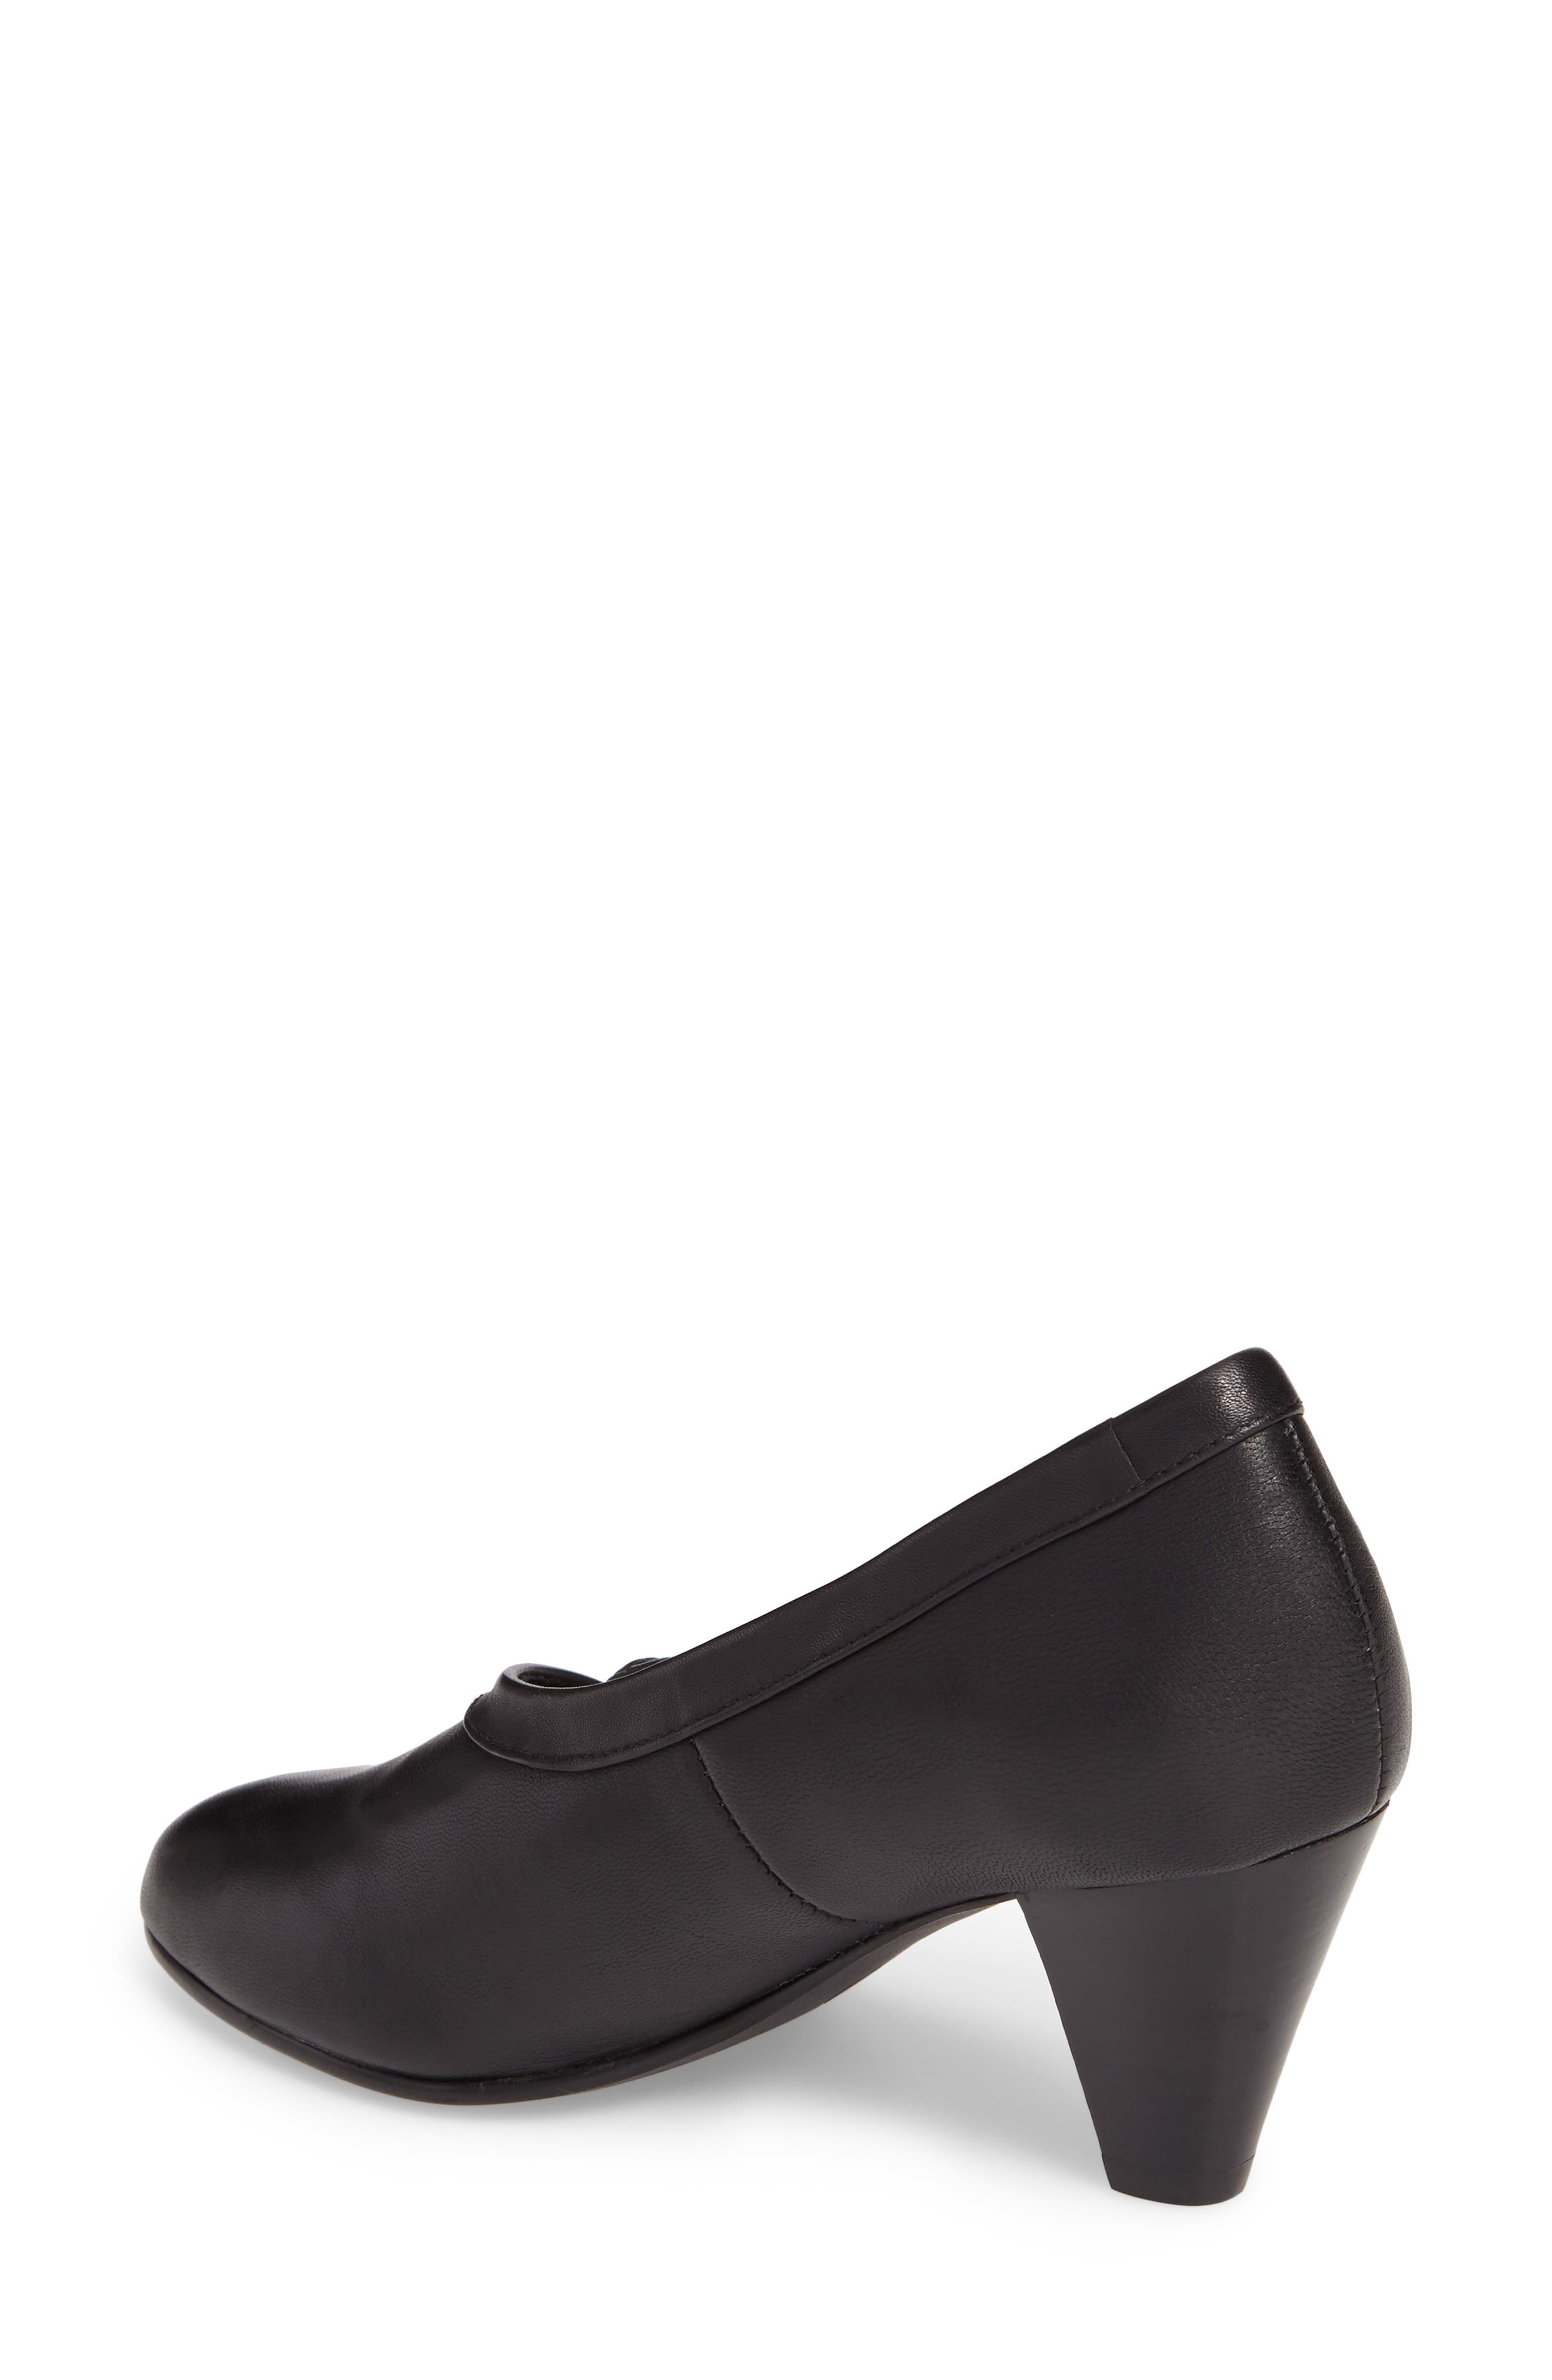 Kelly Pump,                             Alternate thumbnail 2, color,                             Black Leather